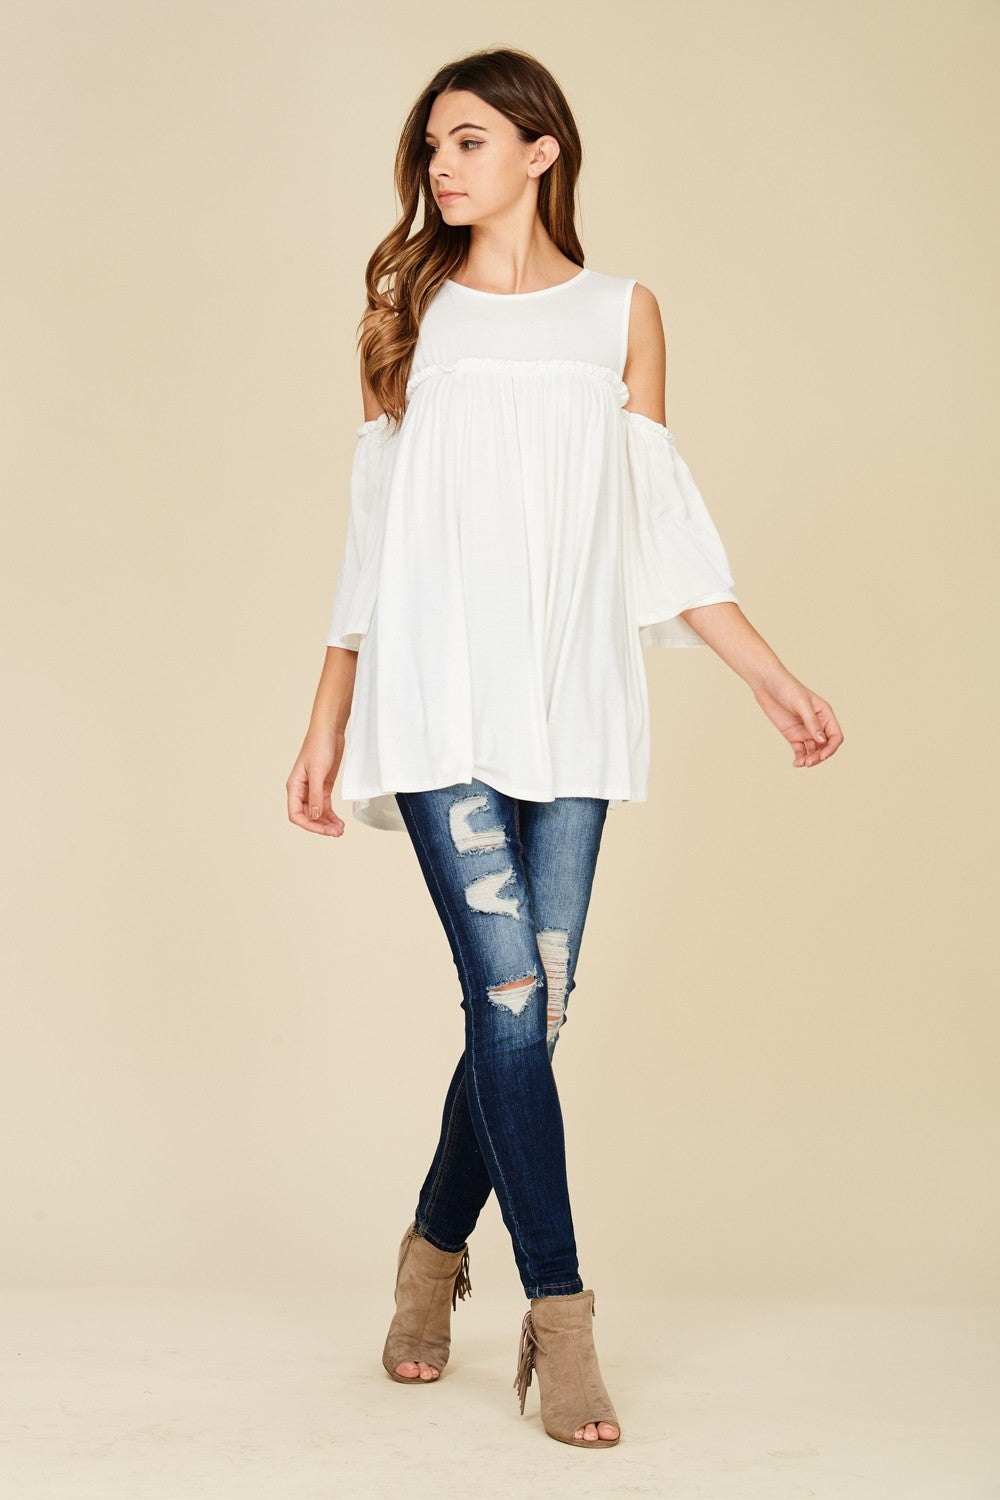 Full view white cold shoulder knit tunic top with three quarter bell sleeves